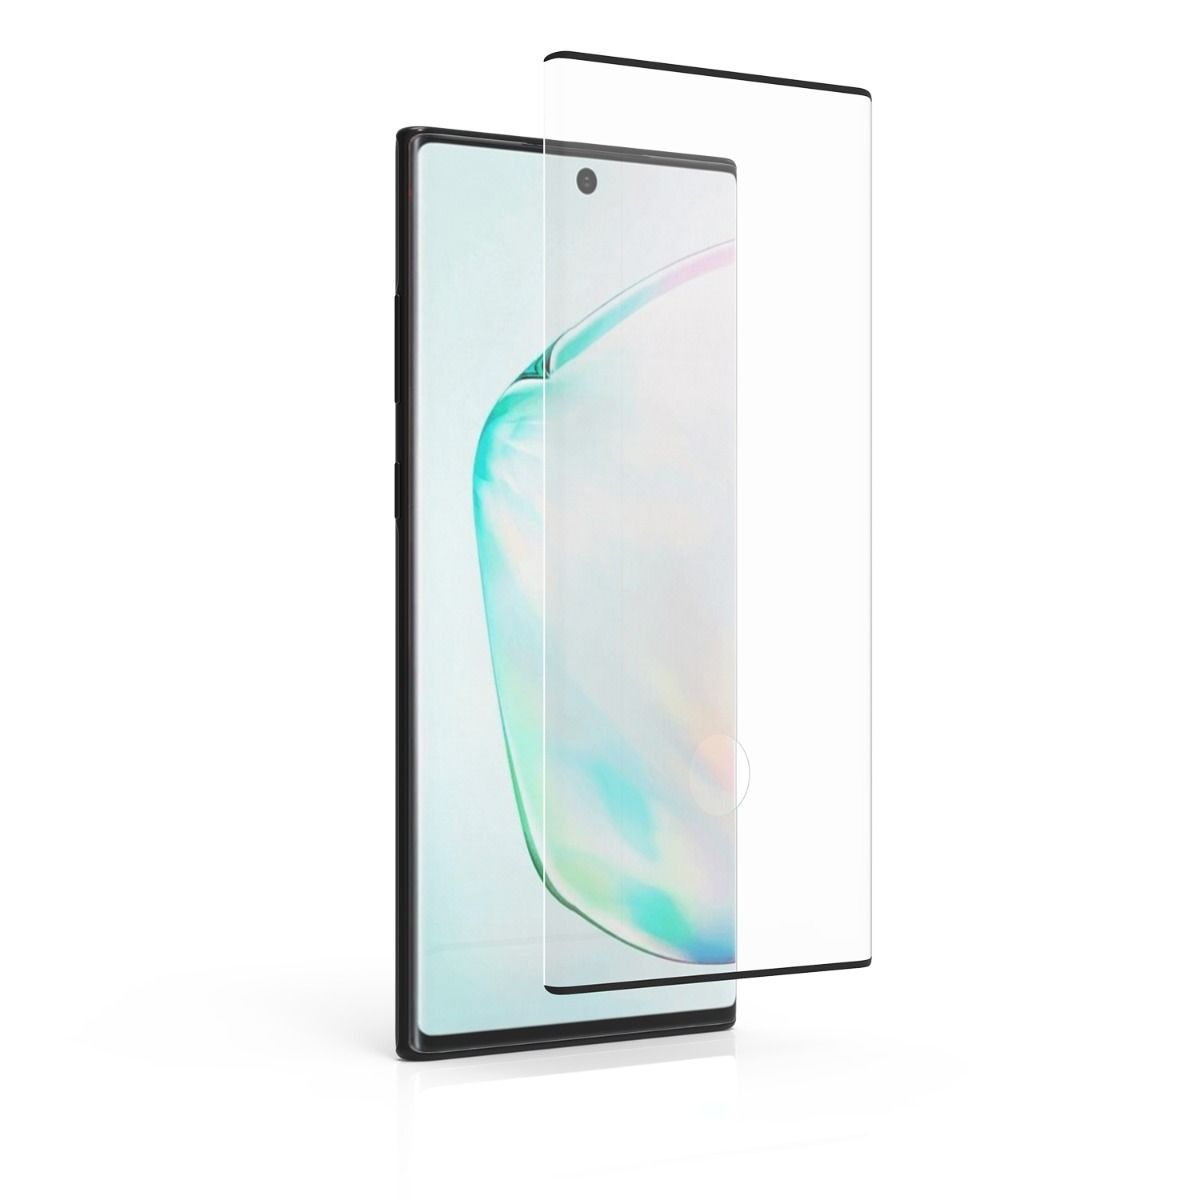 Samsung Galaxy Note10+ High-Definition Curved Glass Screen Protector with Fingerprint Sensor Ready and Black Borders and Alignment Tray